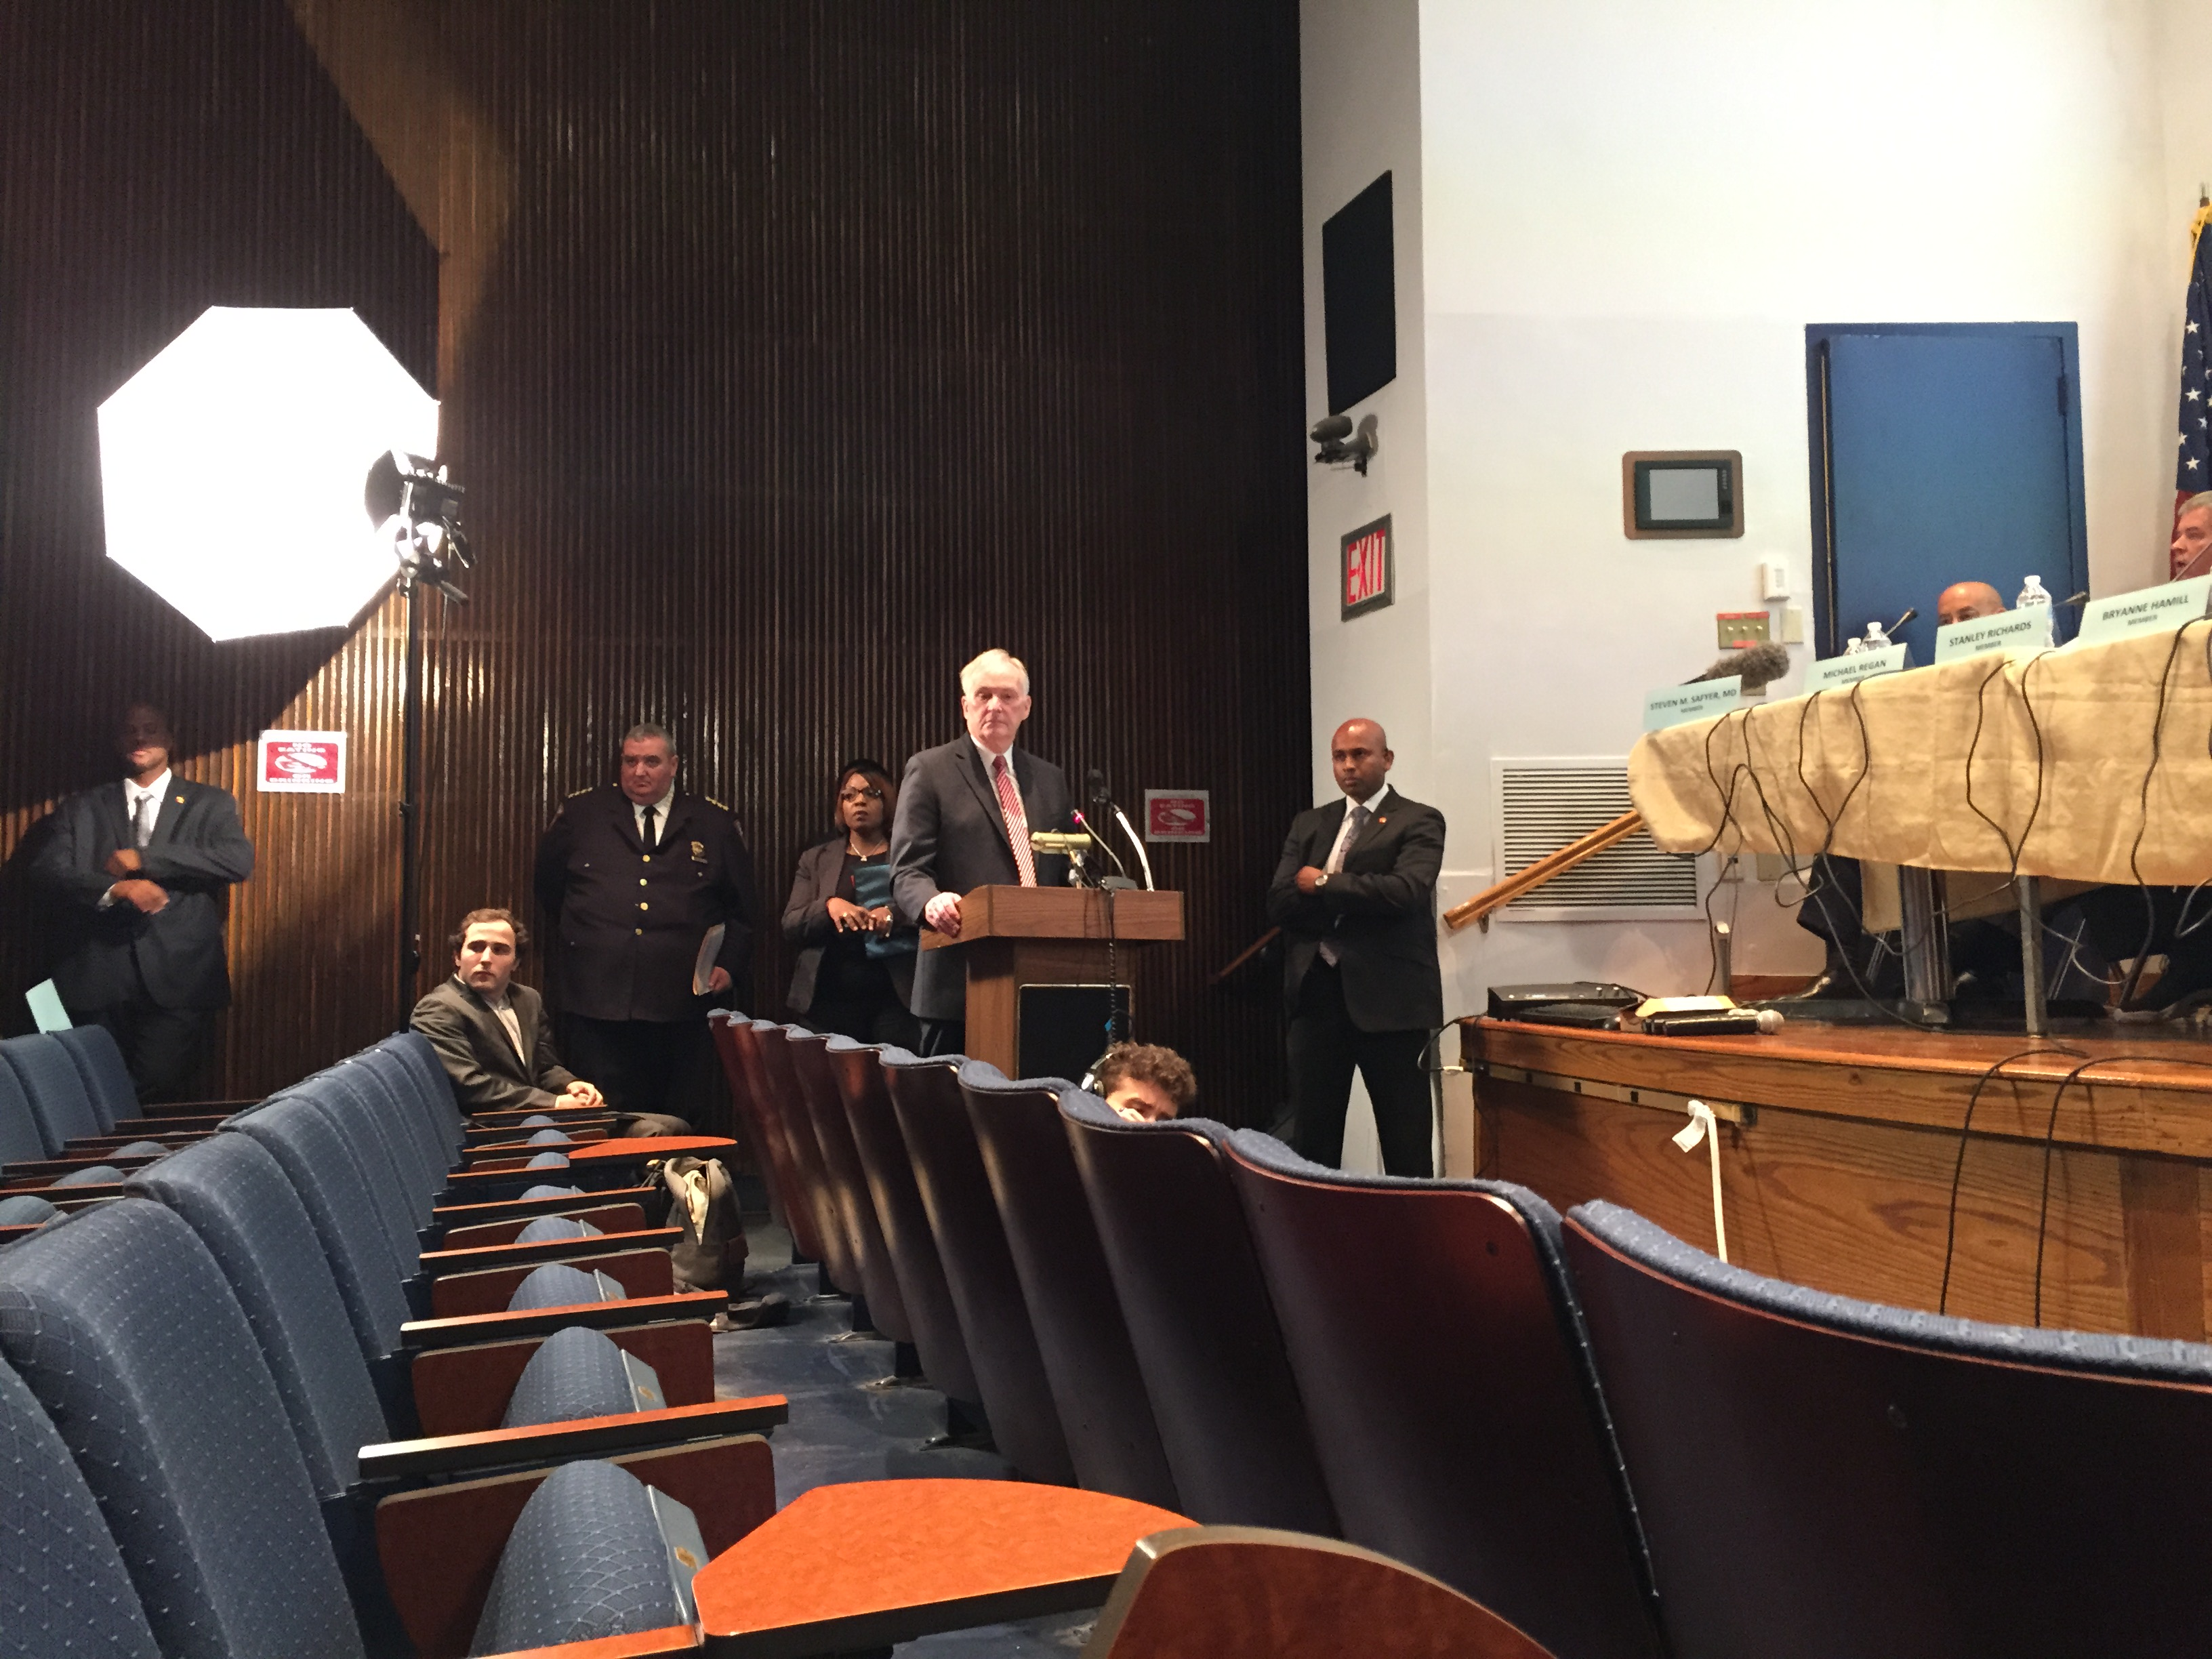 Correction Commissioner Joseph Ponte stands alone at a podium as protesters interrupt him. (Photo: Jillian Jorgensen for Observer)